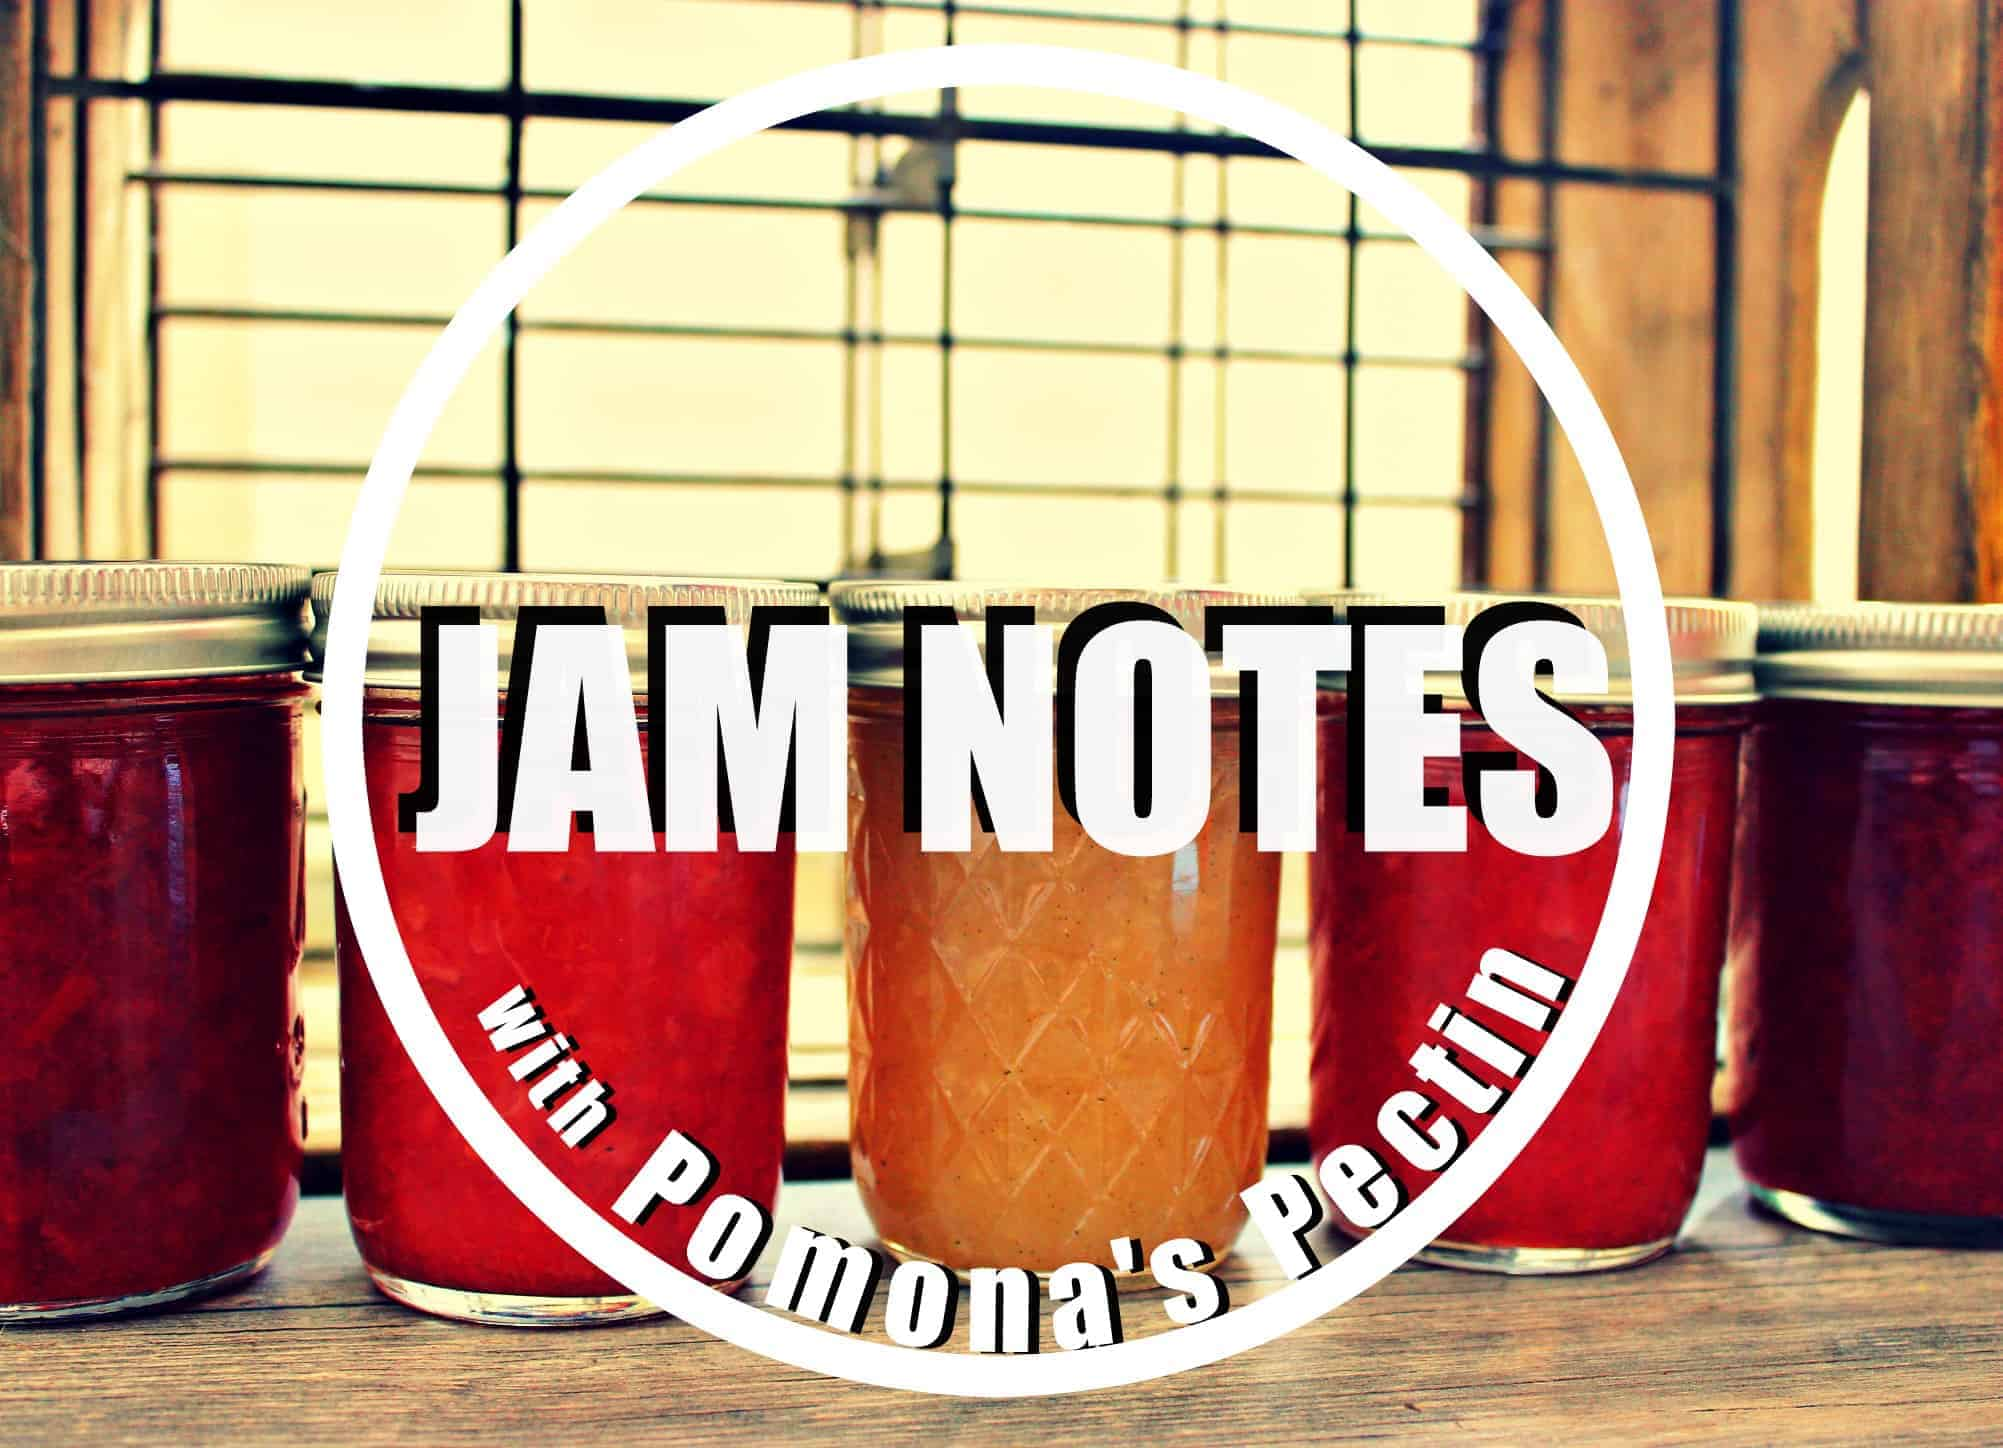 Jam Notes from Pamona's Pectin - Beyond the Bread